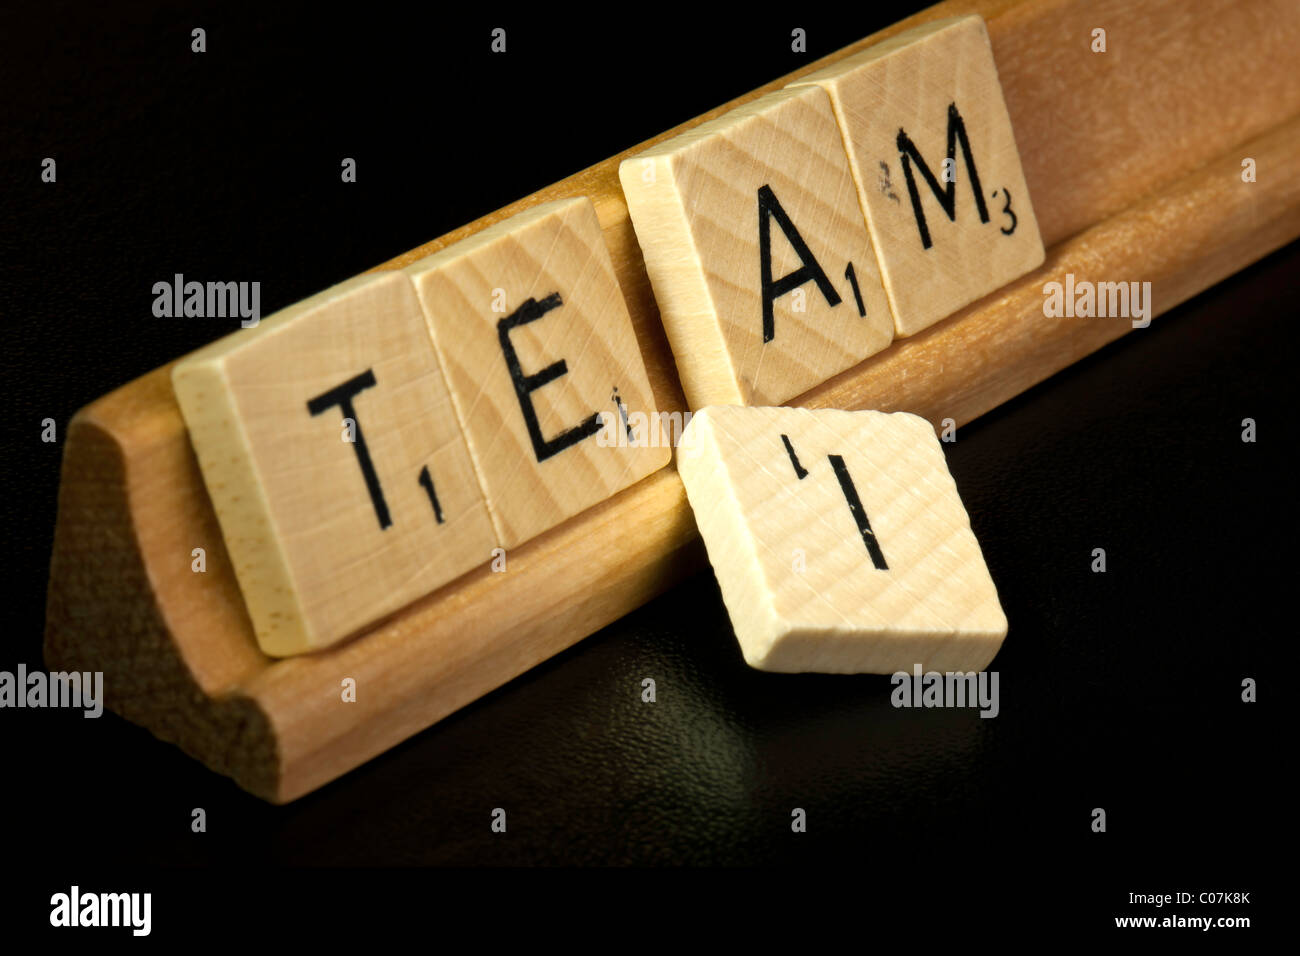 No 'I' in 'Team'. - Stock Image